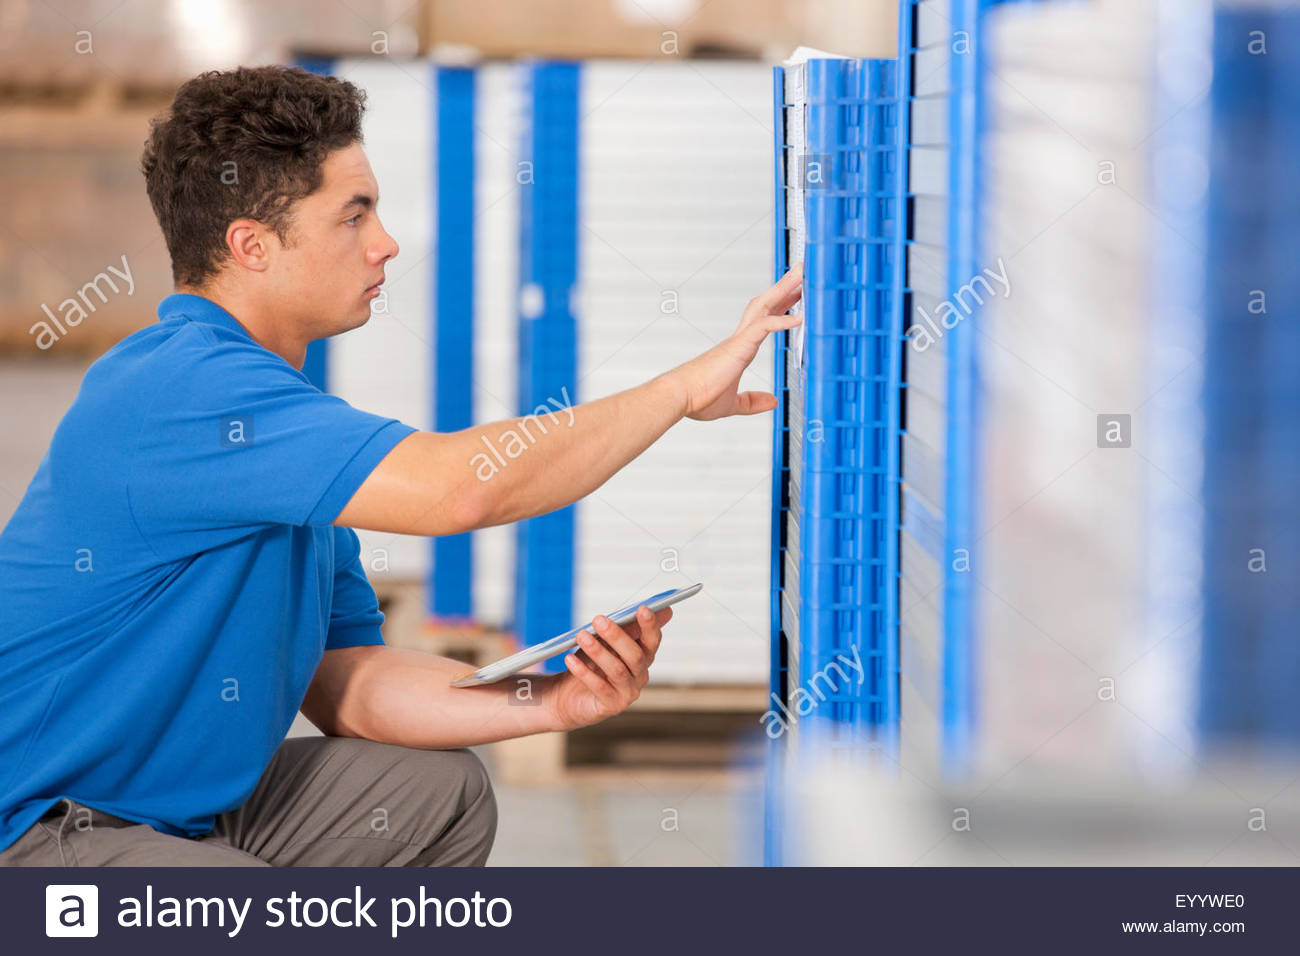 Warehouse worker checking solar panels with digital tablet - Stock Image